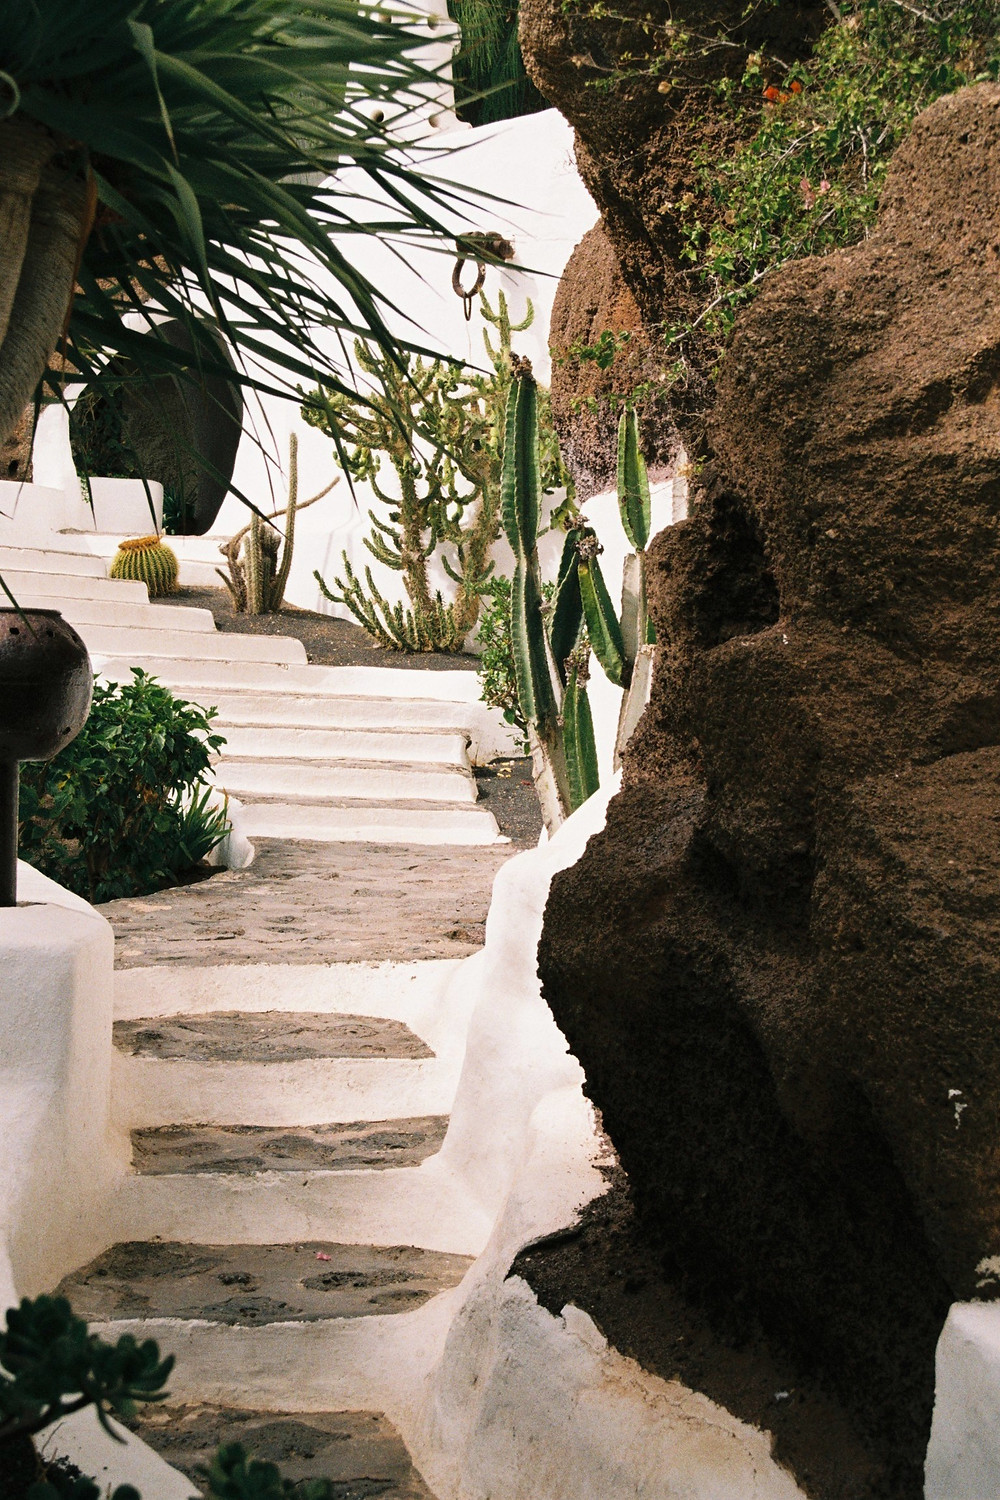 Lagomar Museum in Lanzarote, architectural work by César Manrique and the home of Omar Sharif